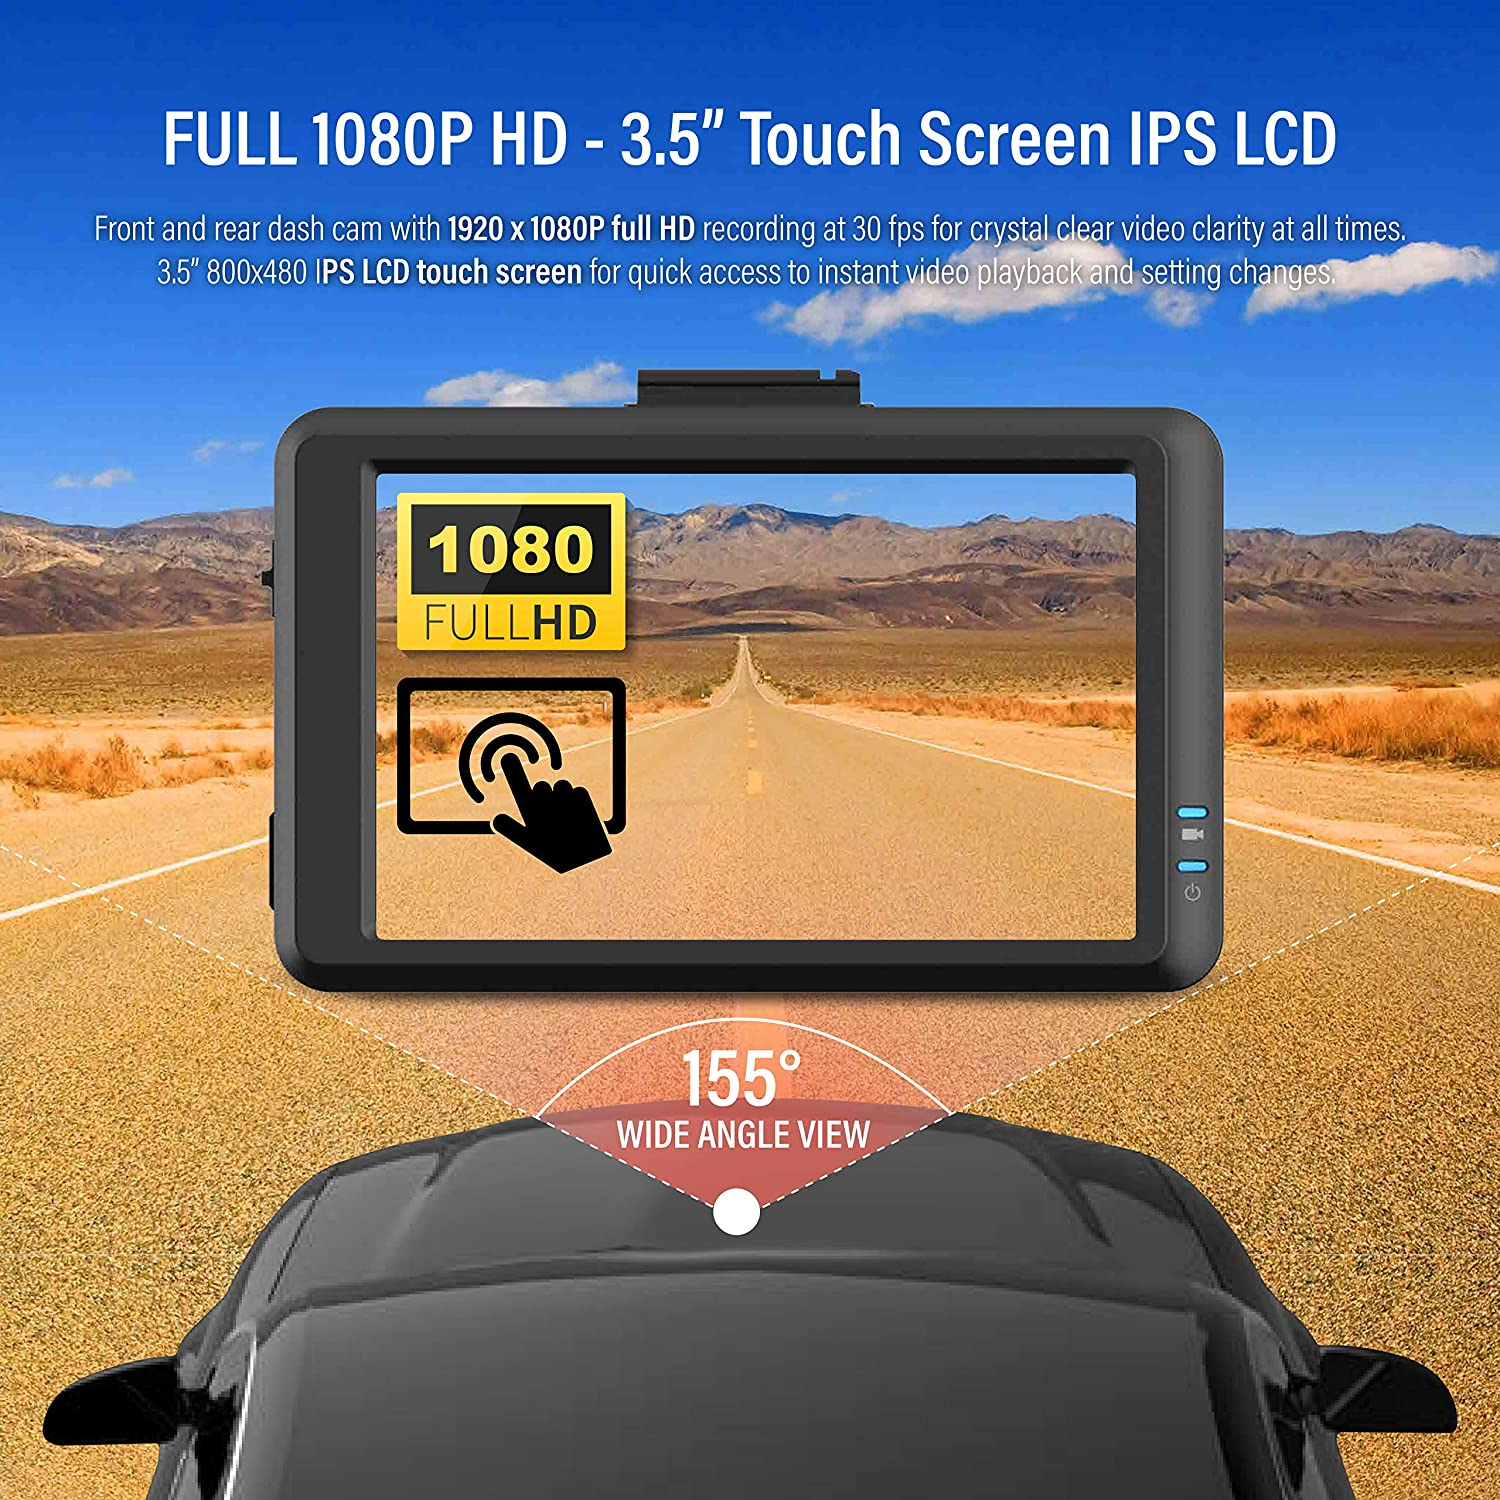 """Hardwiring Cable Samsung 64GB MicroSD Included 3.5/"""" Touch Screen IPS Night Vision ADAS Plus Time Lapse G-Sensor Front and Rear Full HD 1080P FineVu X500 Dash Cam"""